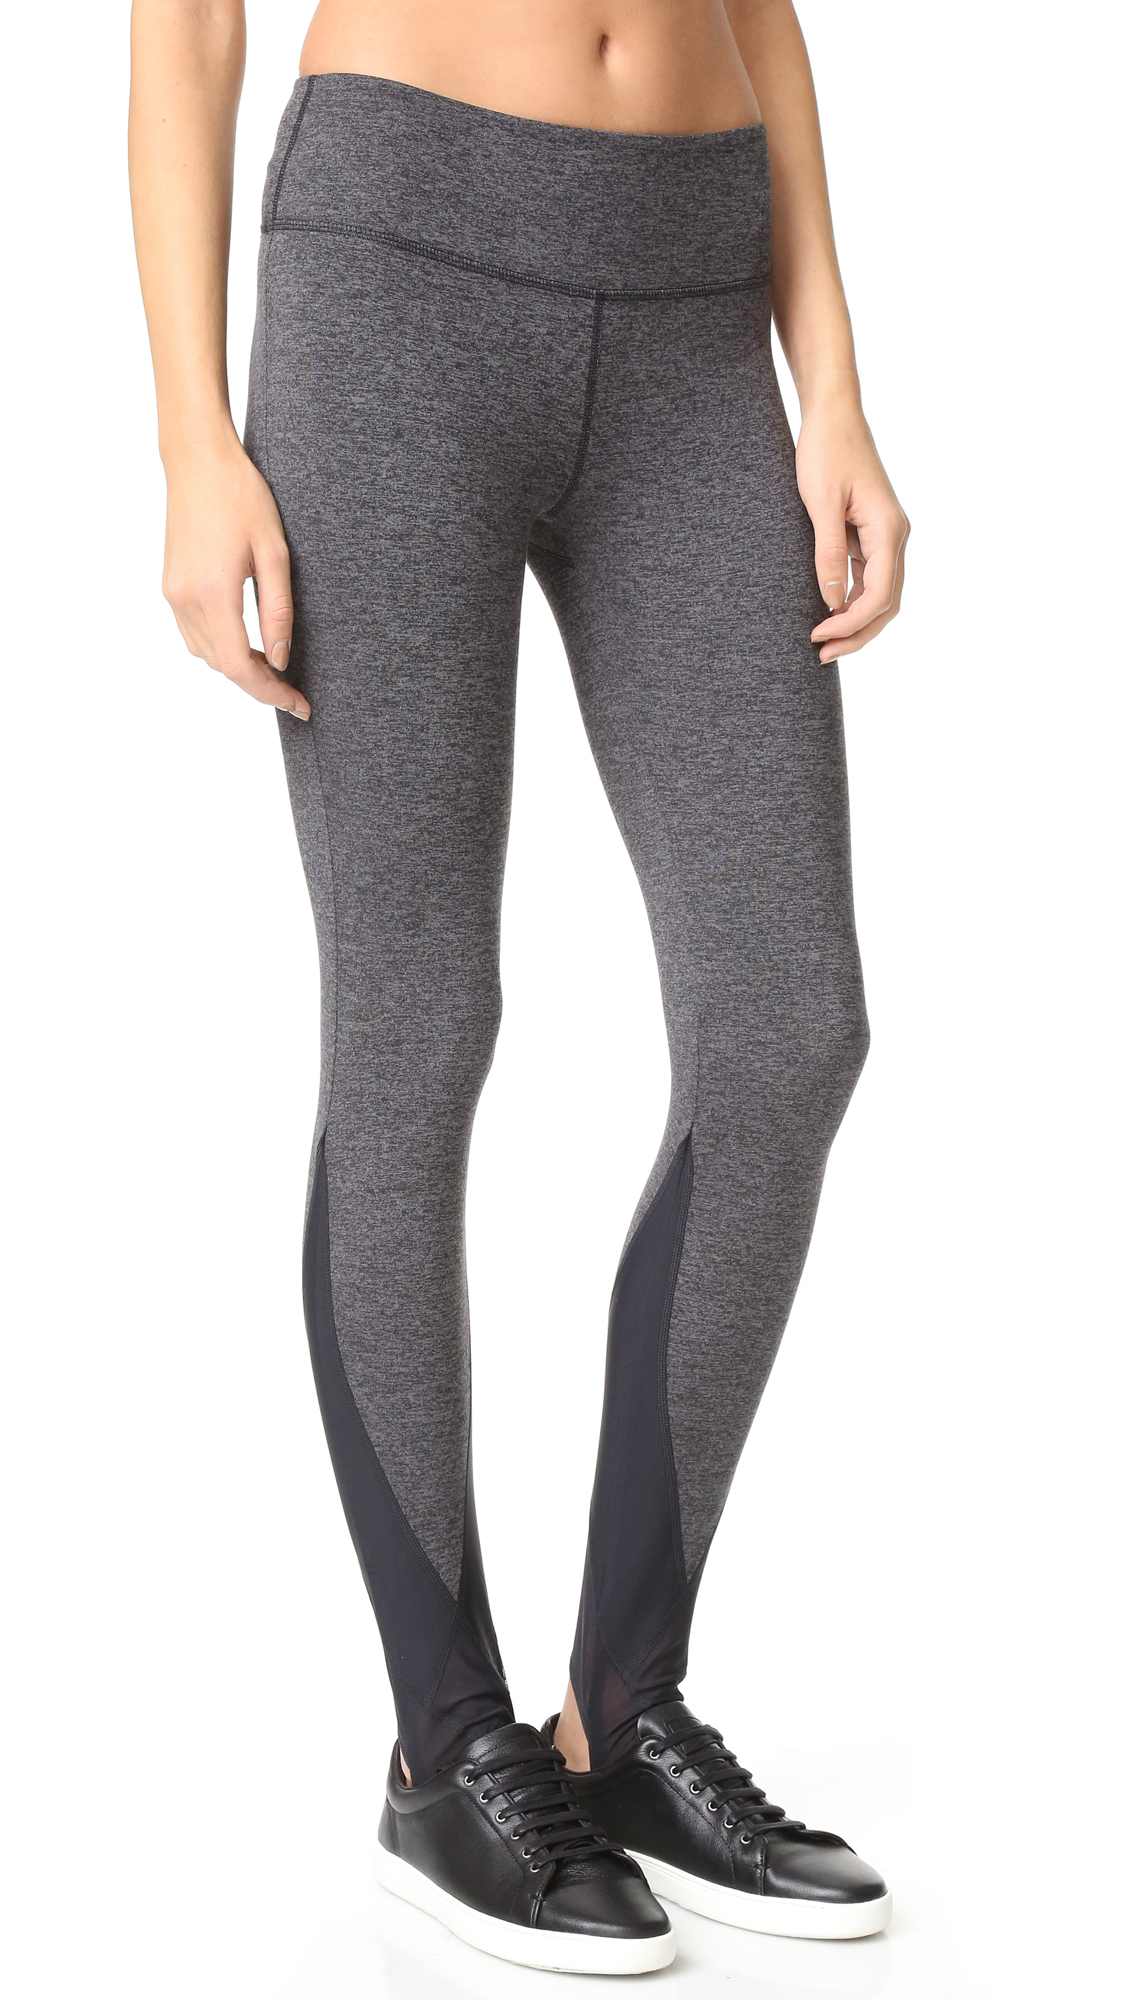 These Free People stirrup leggings are styled with contrast mesh panels. Fabric: Activewear jersey. Shell: 89% polyester/11% spandex. Trim: 90% nylon/10% spandex. Wash cold or dry clean. Imported, Taiwan. Measurements Rise: 9in / 23cm Inseam: 29.25in / 74cm Measurements from